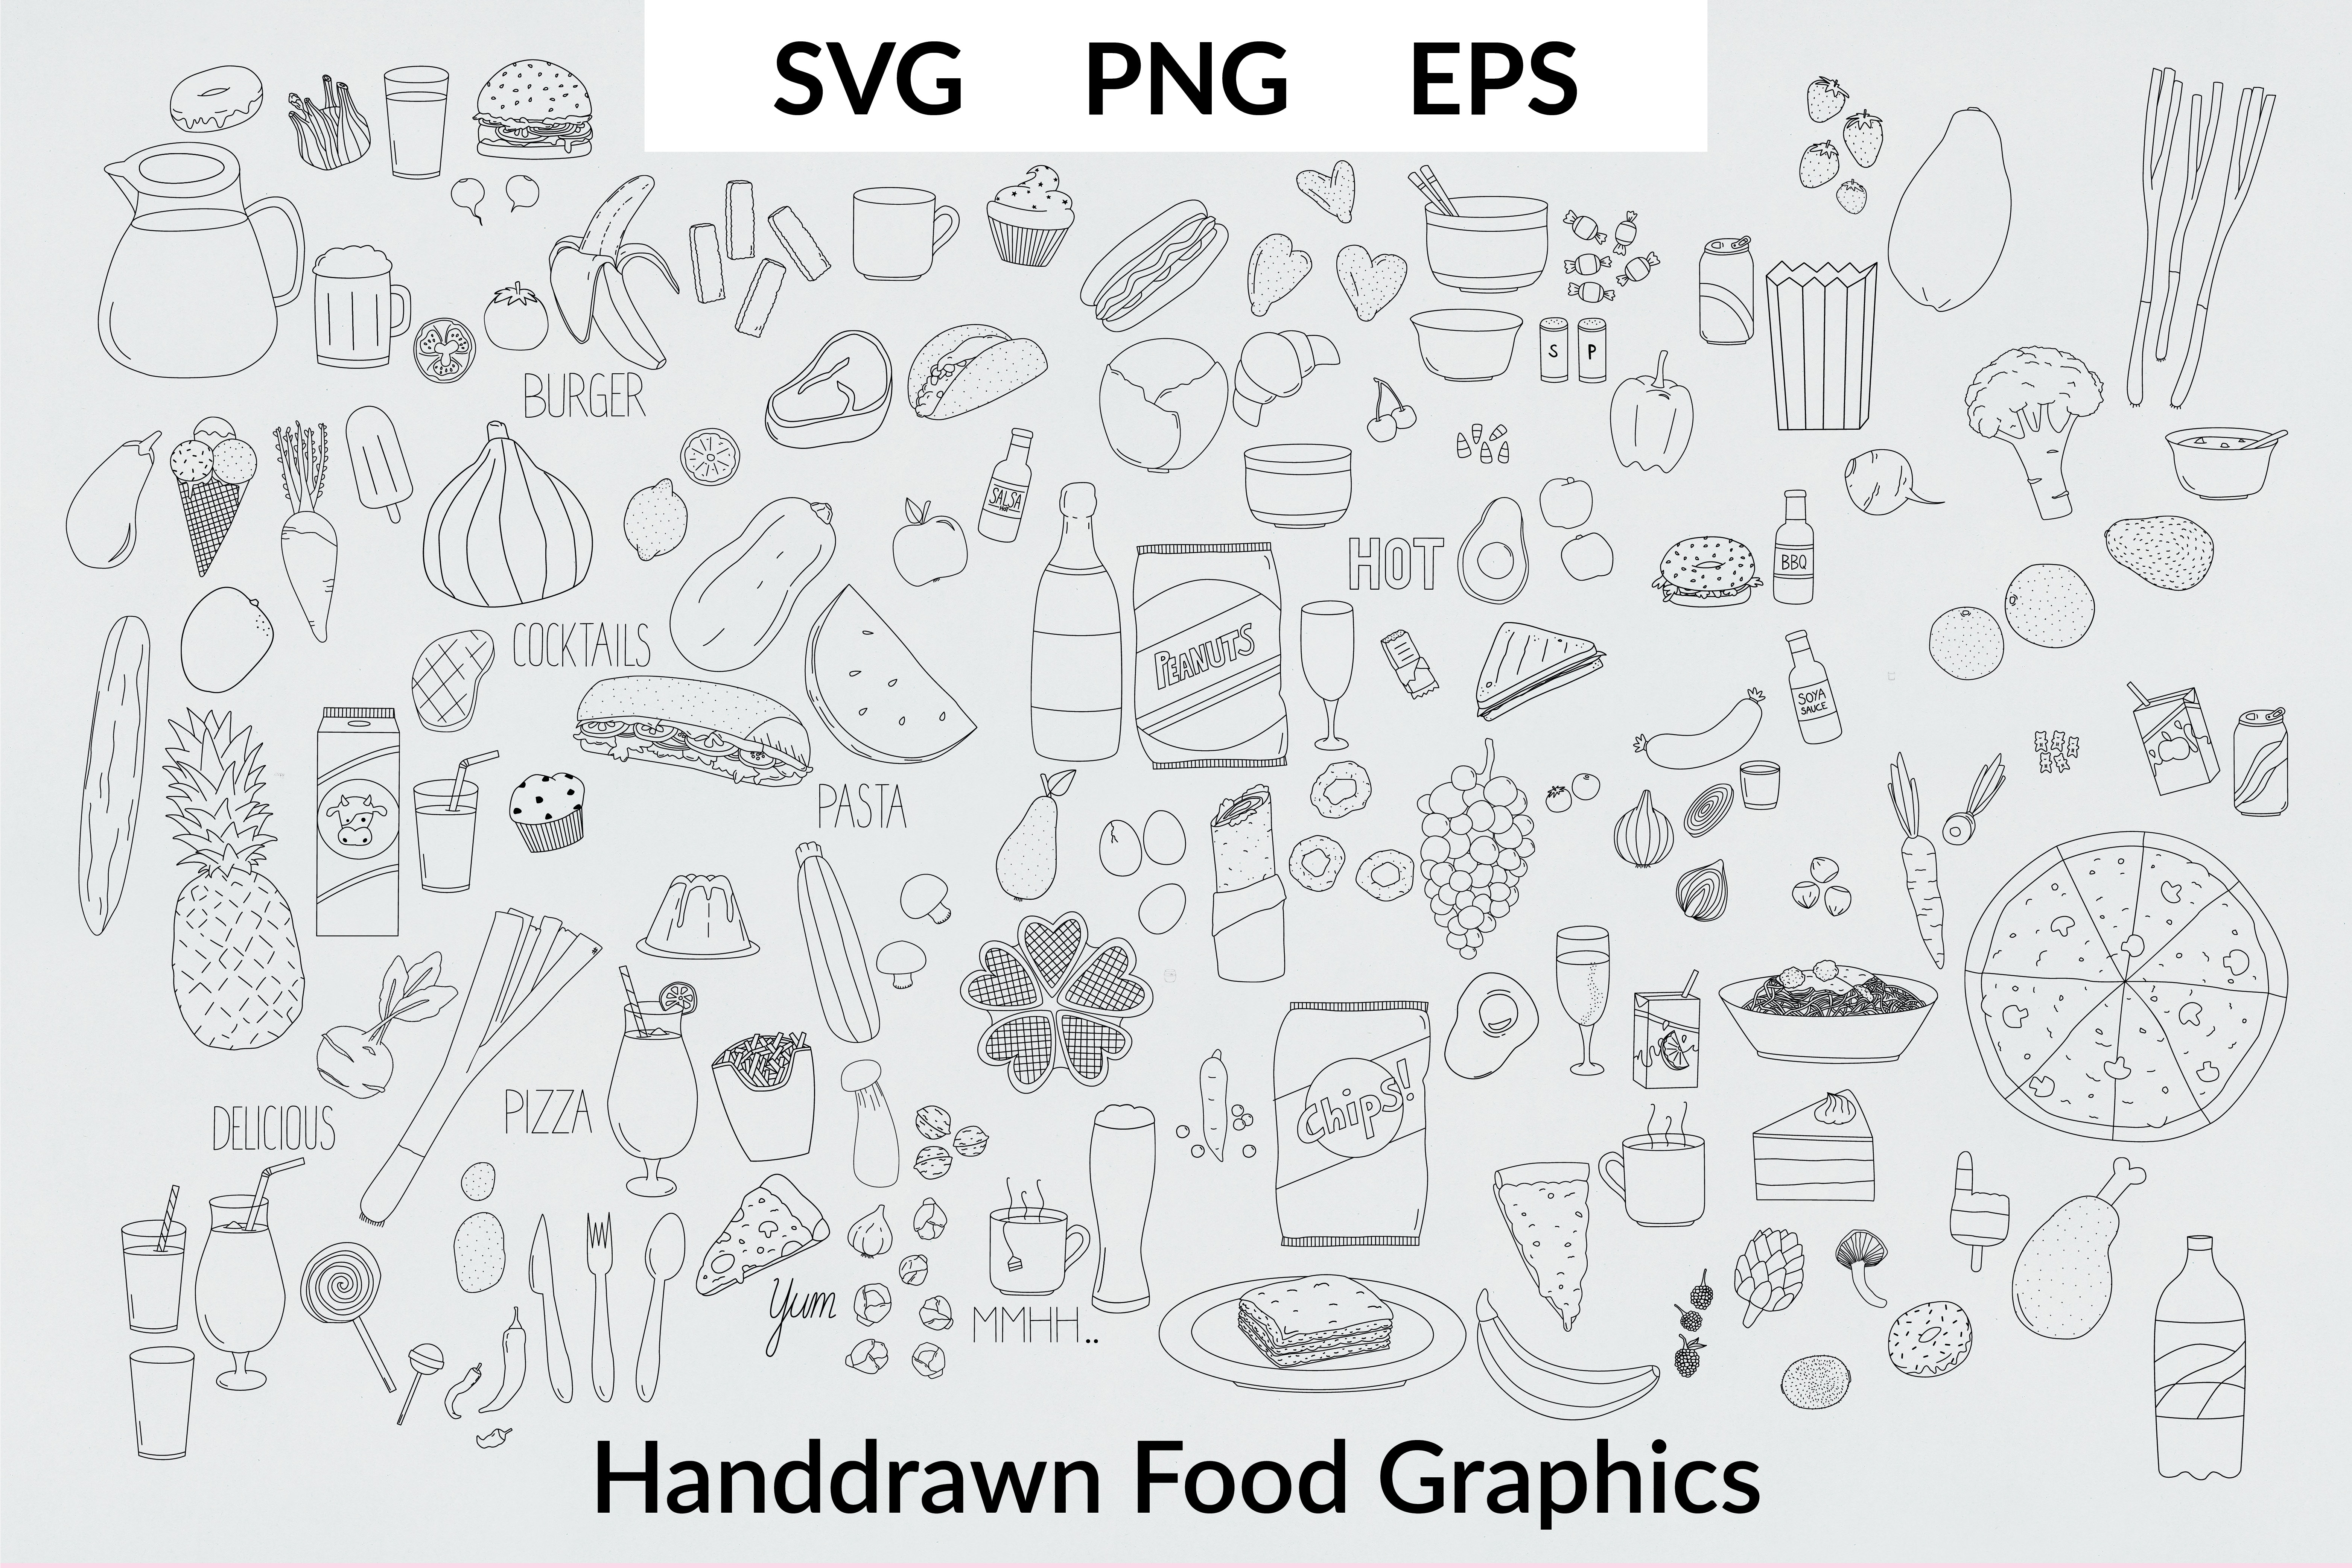 Download Free Over 130 Cute Handdrawn Food Graphics Graphic By Liebreizdesign SVG Cut Files